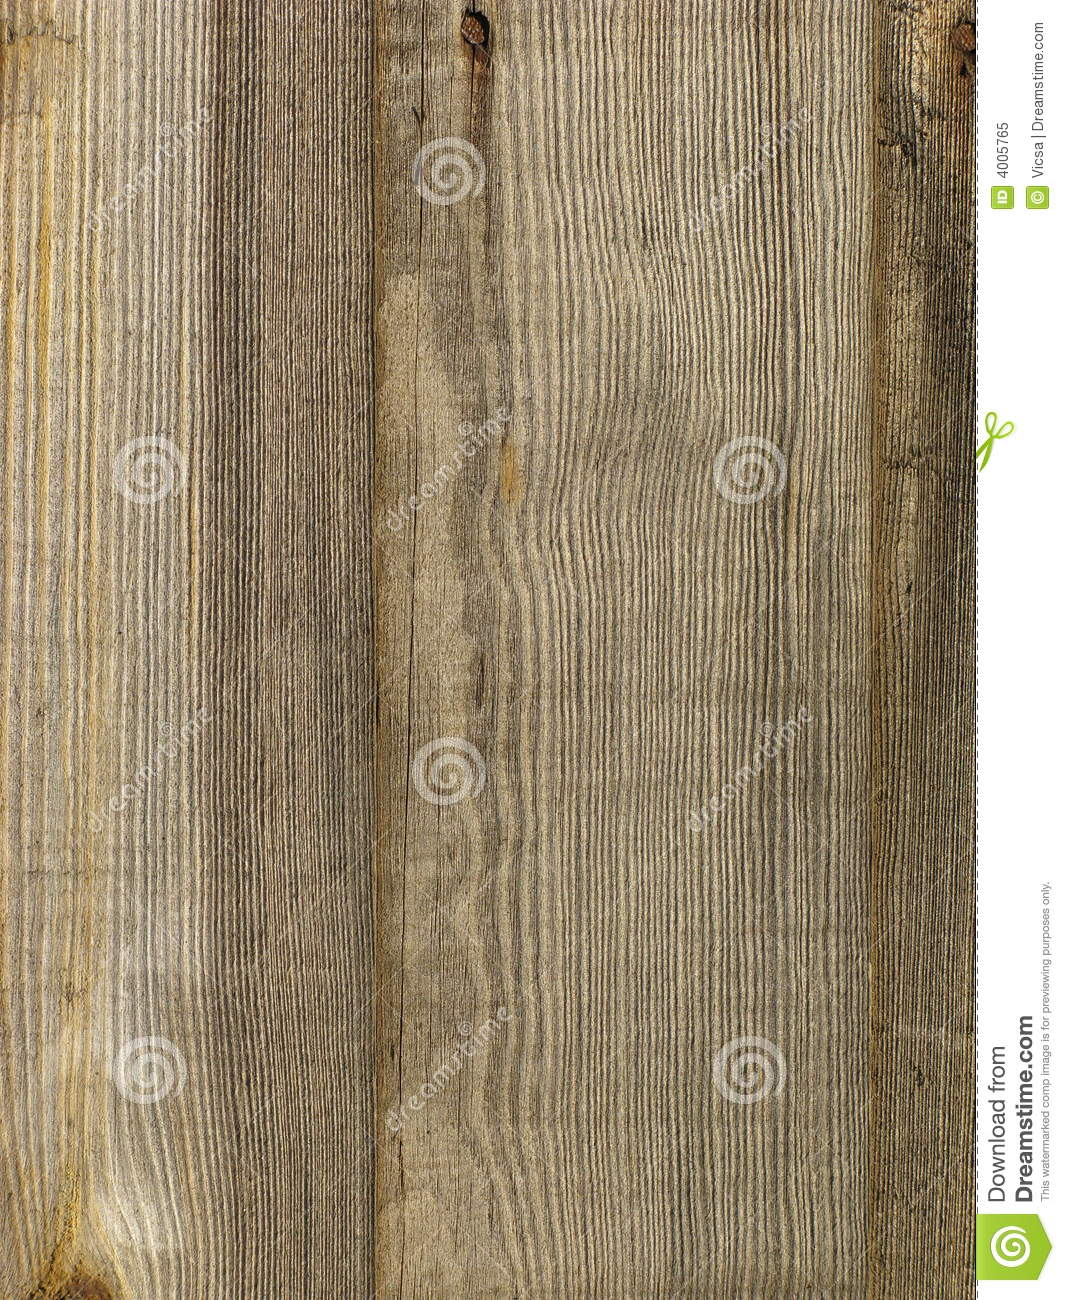 Wood Fence Texture : Wooden Fence Texture Royalty Free Stock Photo - Image: 4005765